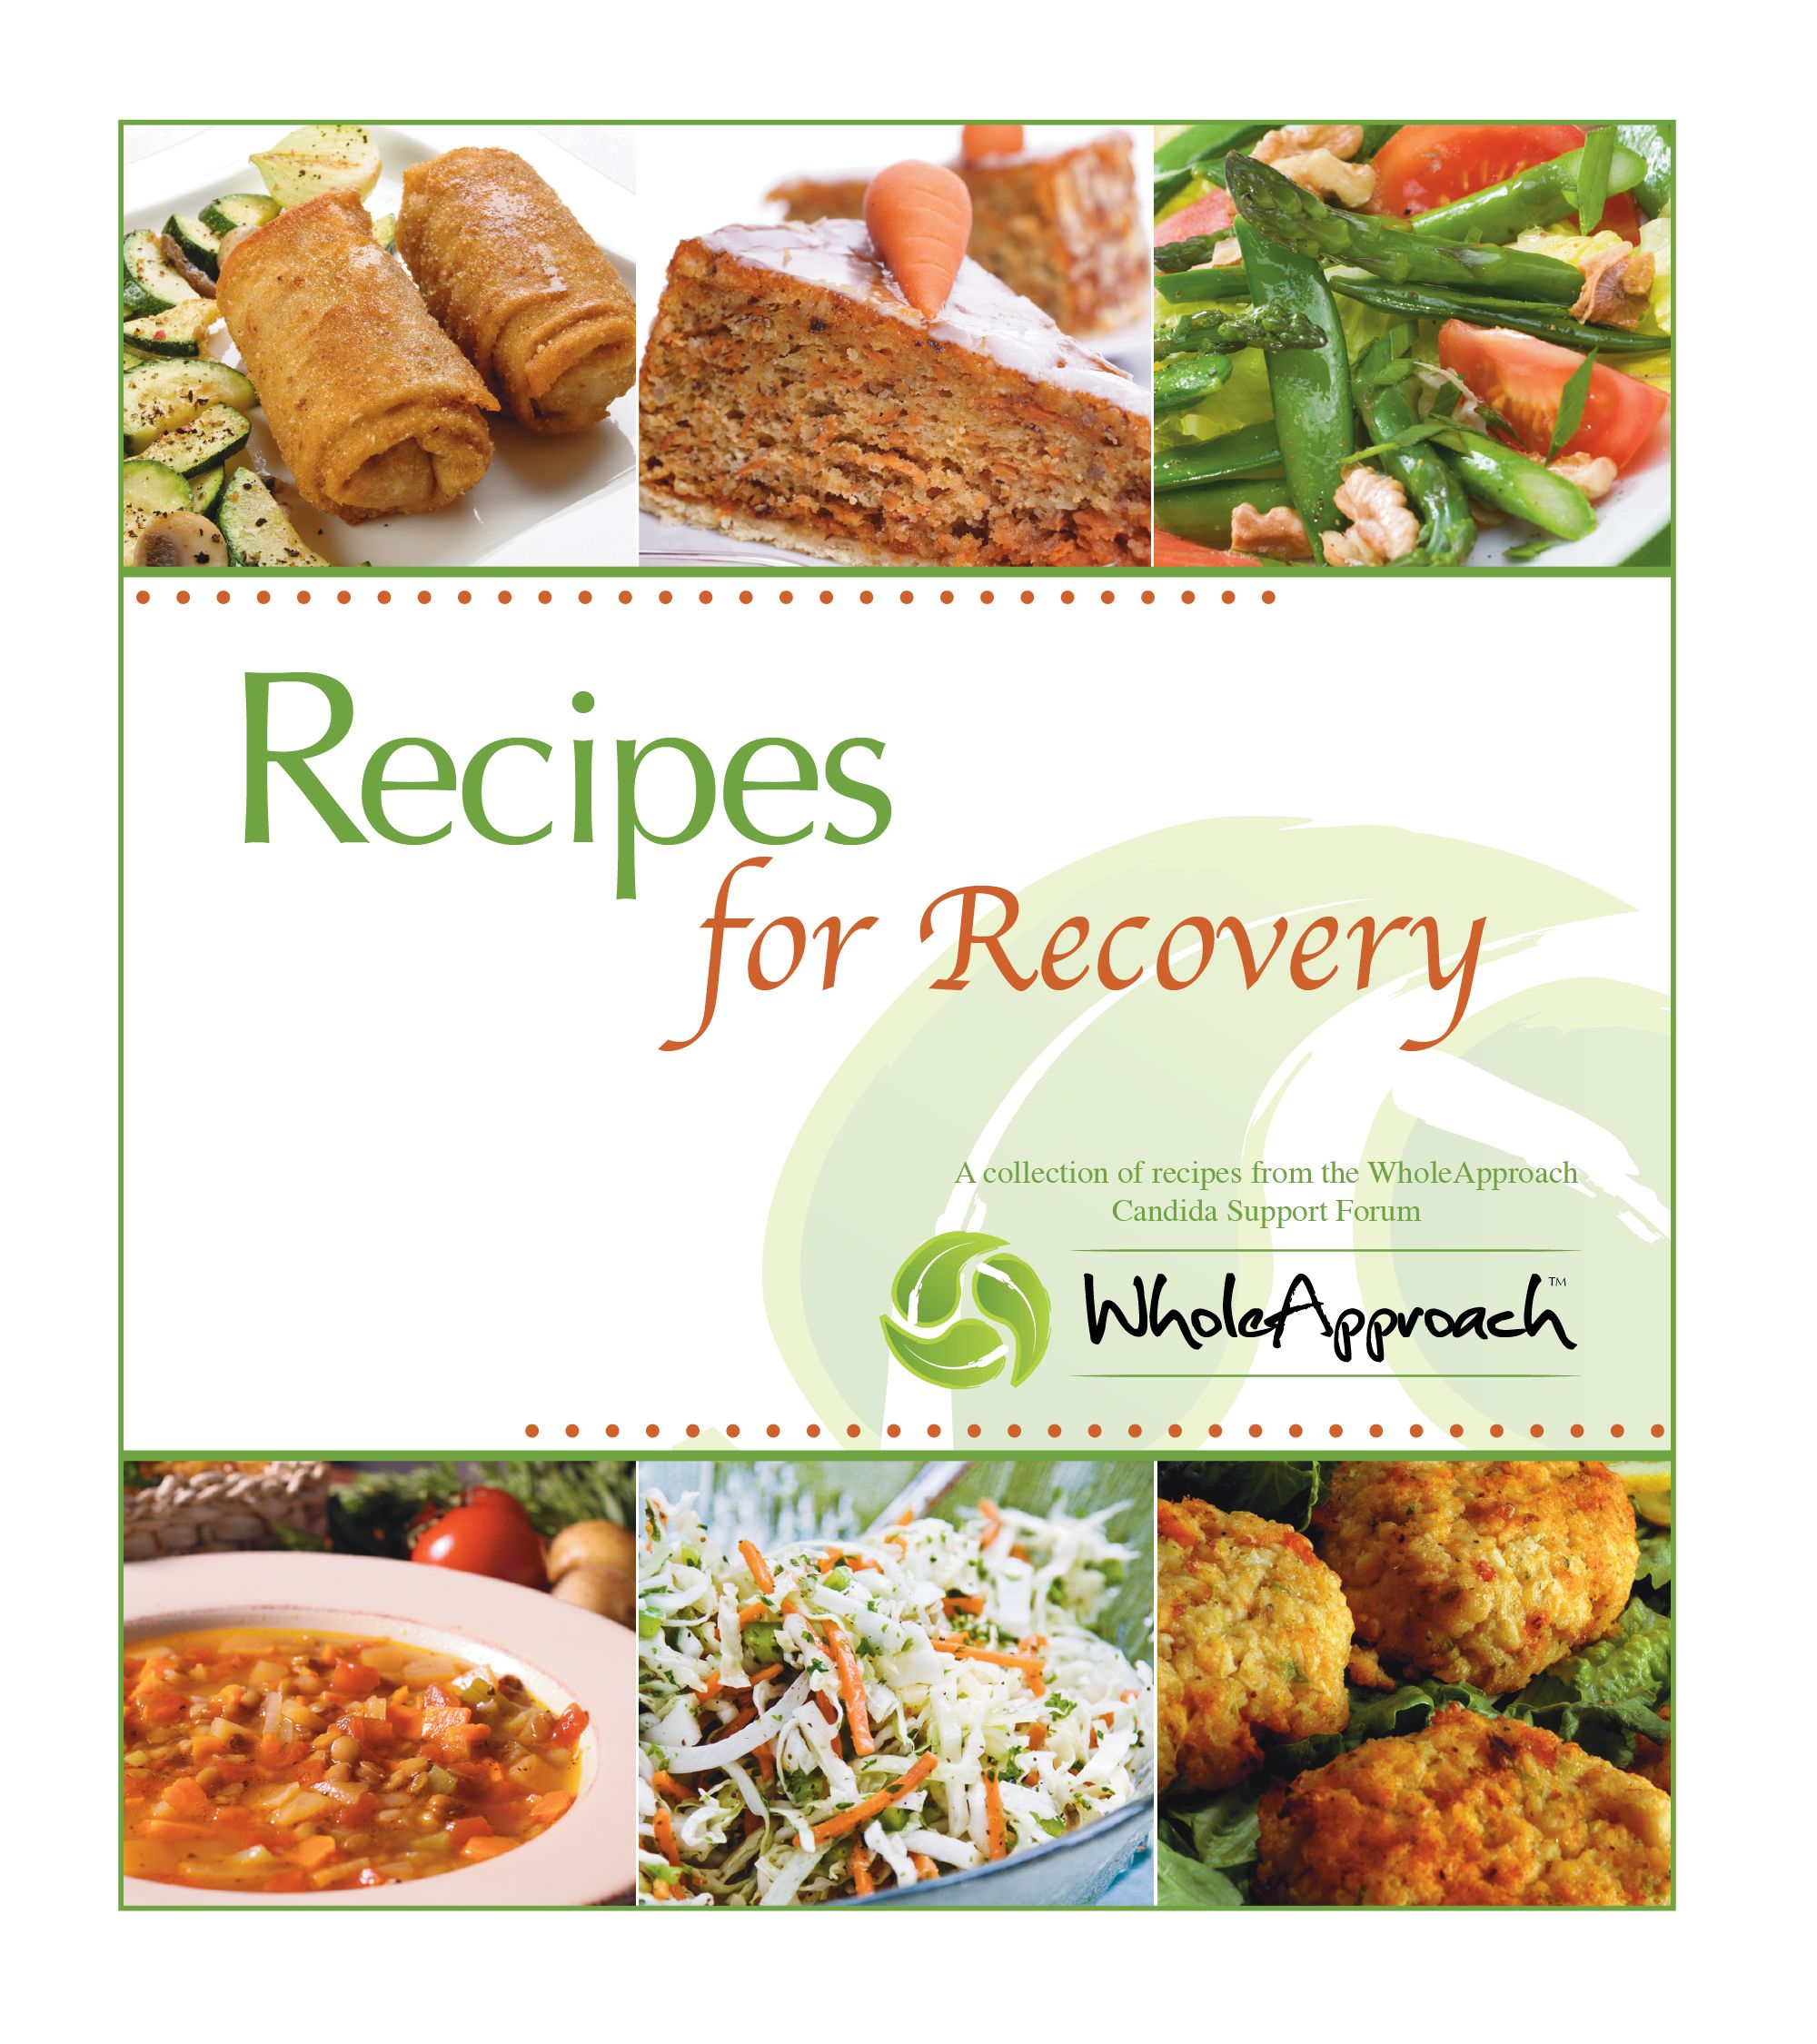 Upload your recipe photo for a chance to win a free candida food forumfinder Choice Image